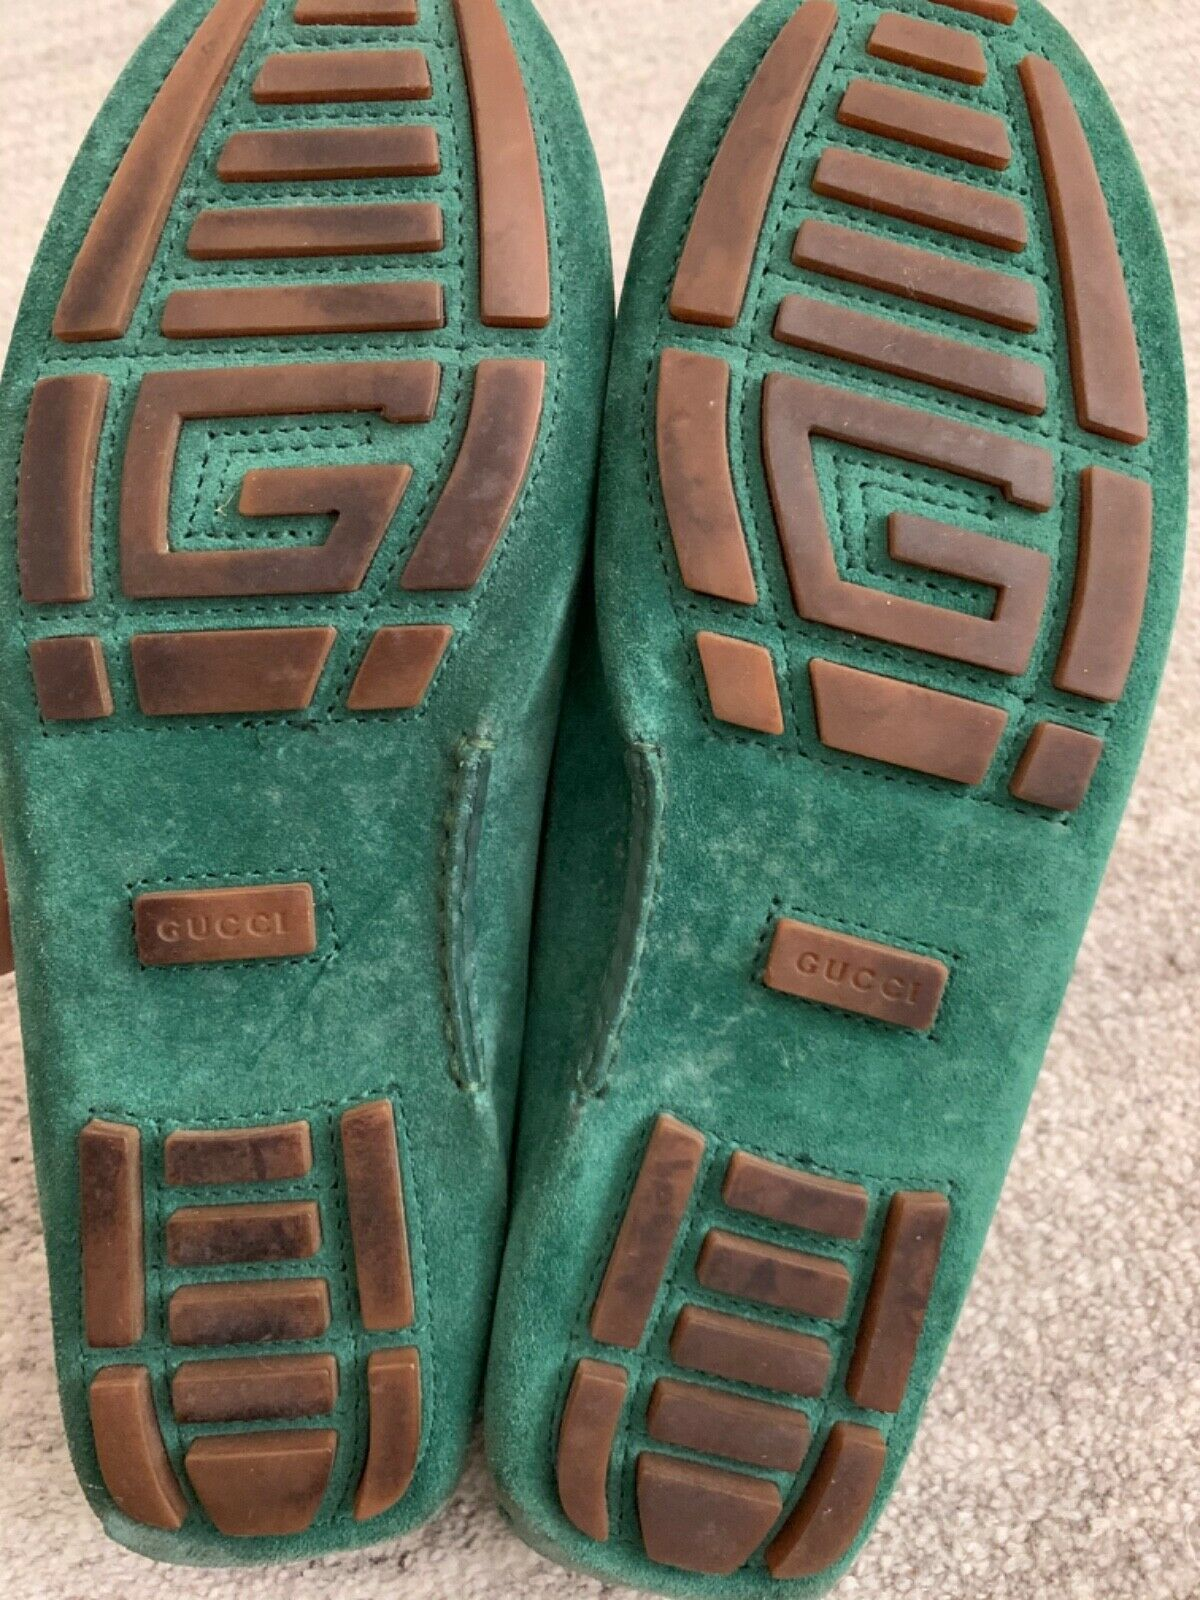 Gucci Suede Green Loafers - image 4